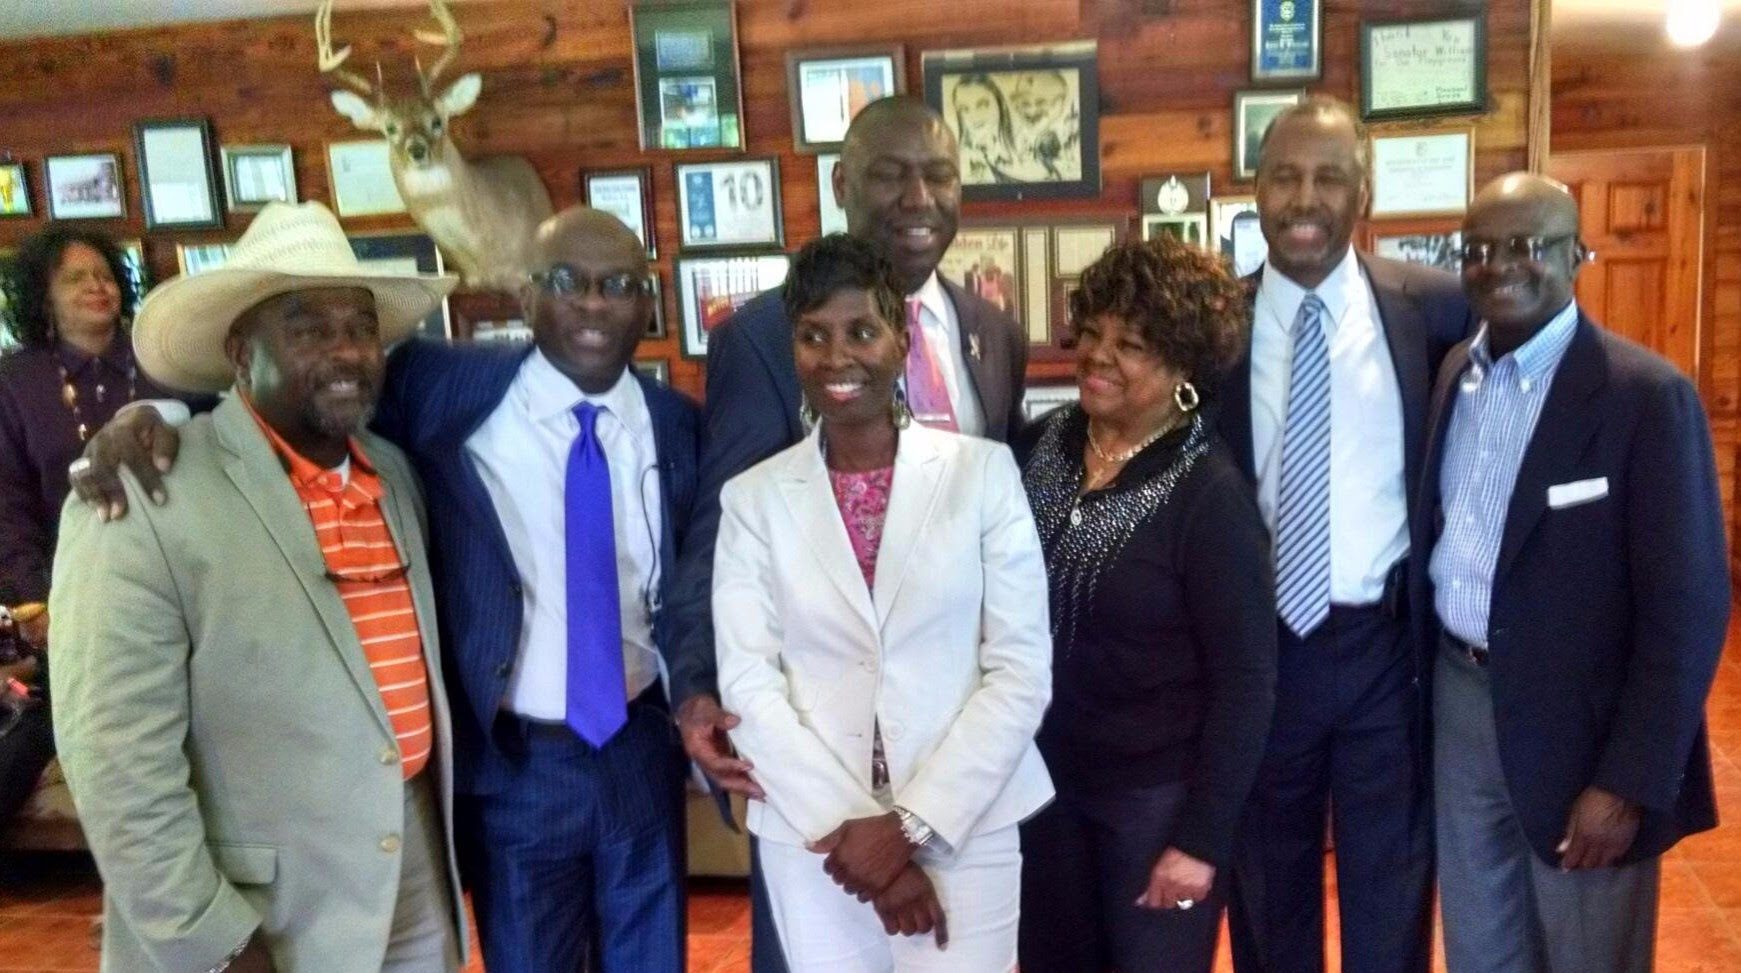 (From left to right:) Bruce Williams, Armstrong Williams, Civil Rights Attorney Benjamin Crump, Mary Williams-Taylor, Gospel Legend Shirley Ceasar, Renowned Pediatric Neurosurgeon Dr. Ben Carson, and Sen. Kent Williams